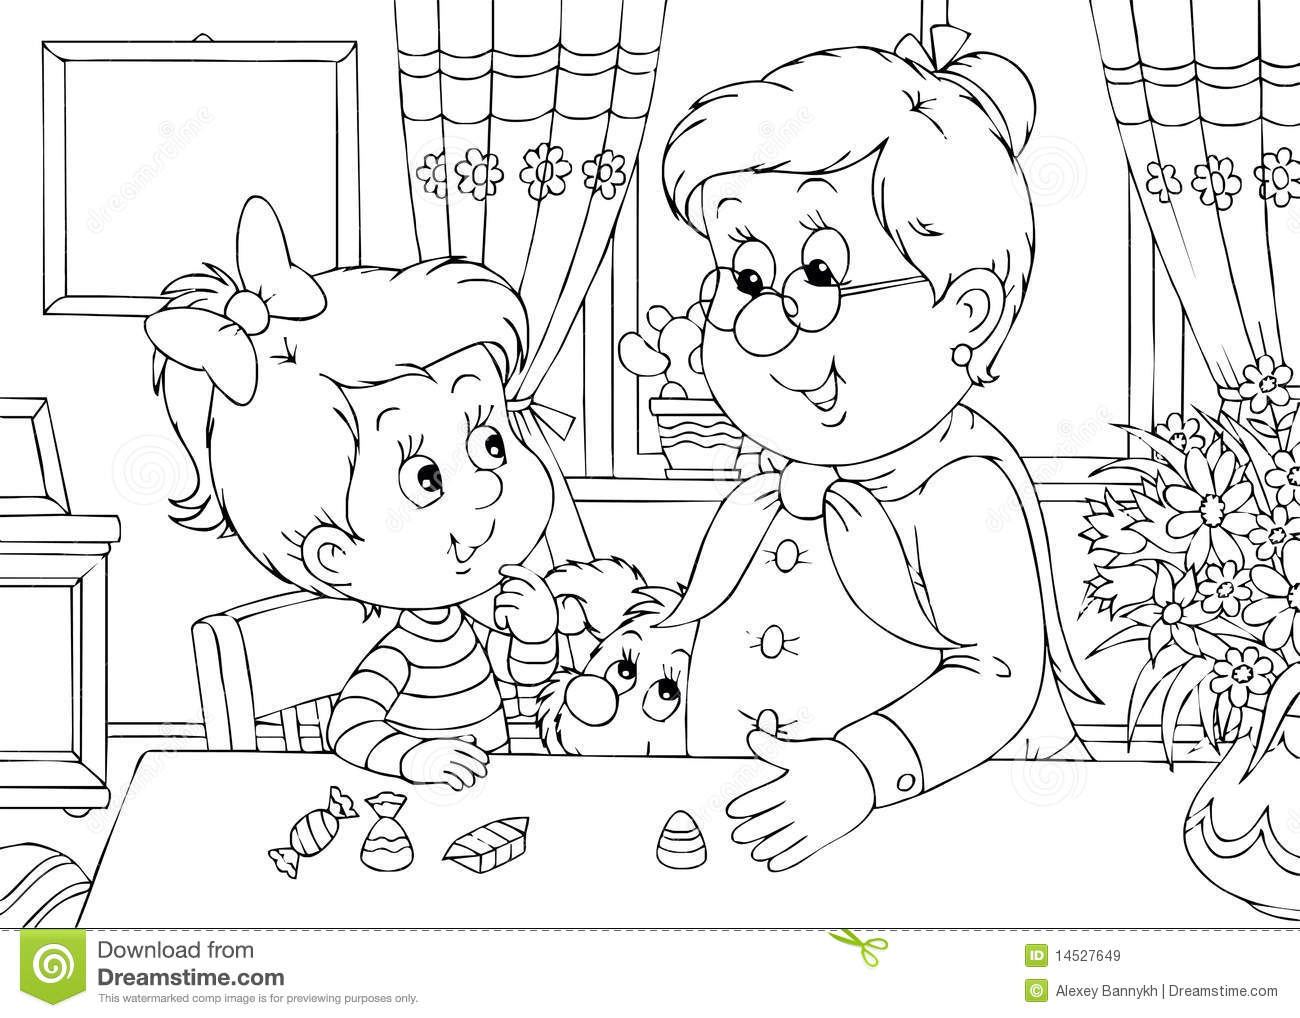 Coloring pages kitchen - In The Kitchen Coloring Pages Free Printable Coloring Pages